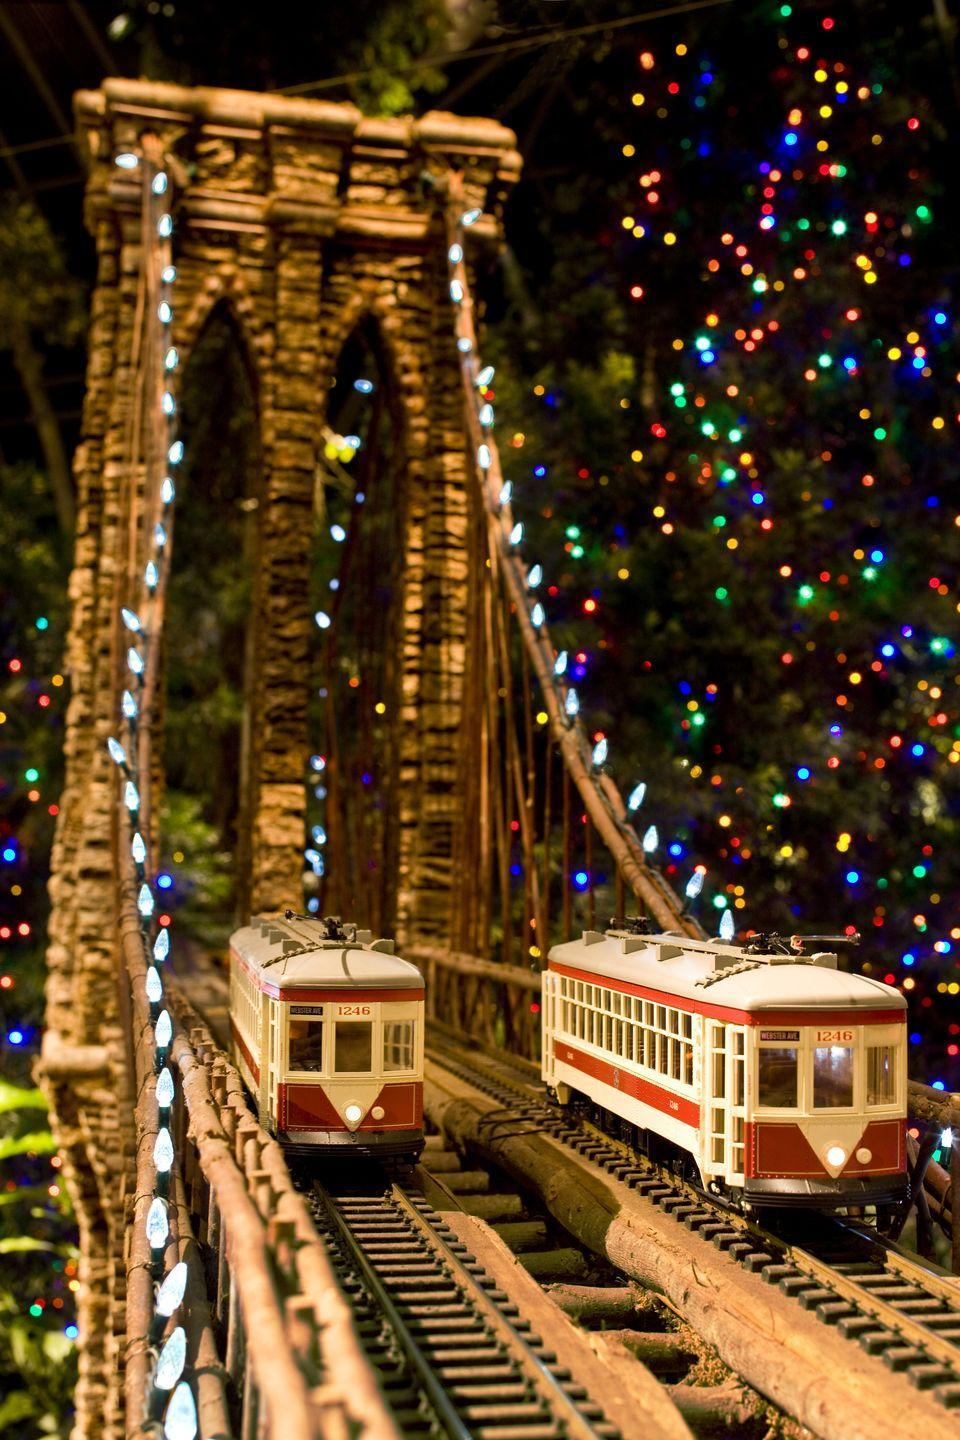 "<p>Kids and adults alike won't want to miss the annual holiday train show at the <a href=""https://www.nybg.org/event/holiday-train-show/"" rel=""nofollow noopener"" target=""_blank"" data-ylk=""slk:New York Botanical Garden"" class=""link rapid-noclick-resp"">New York Botanical Garden</a>, which runs from November to late January. (This year, the event is limited to members and Bronx community partners.) After marveling at the magical display of toy trains, be sure to check out the <a href=""https://www.nybg.org/event/nybg-glow/"" rel=""nofollow noopener"" target=""_blank"" data-ylk=""slk:&quot;NYBG GLOW&quot; event"" class=""link rapid-noclick-resp"">""NYBG GLOW"" event</a>, an all-new outdoor experience for the holiday.</p>"